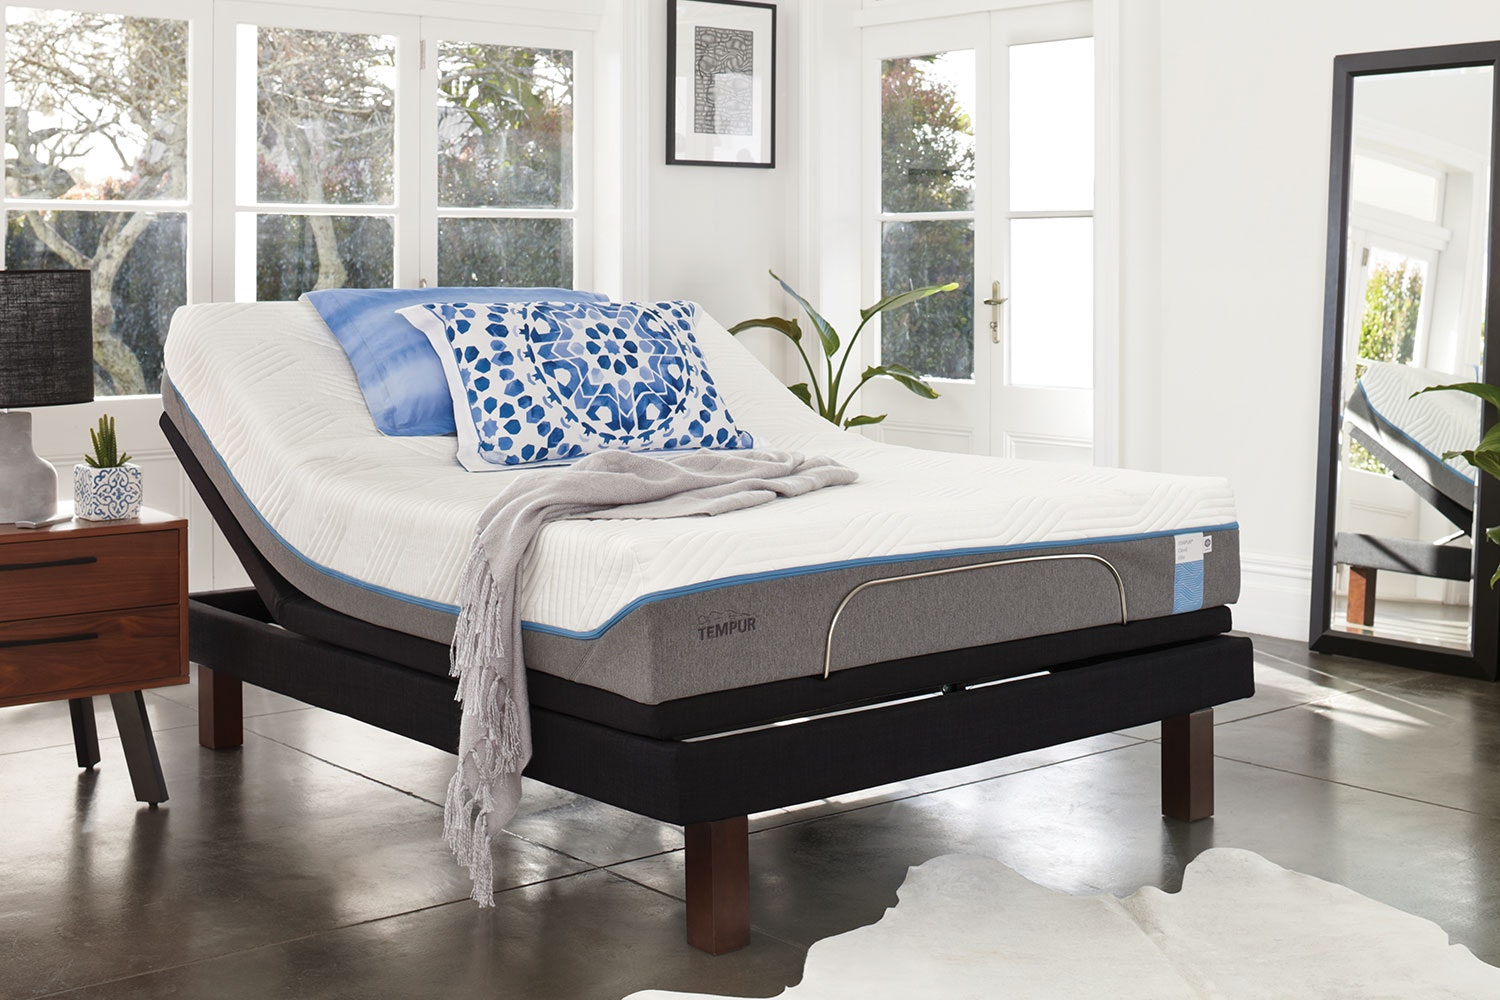 Nova Elite King Mattress with Platinum Adjustable Base by Tempur